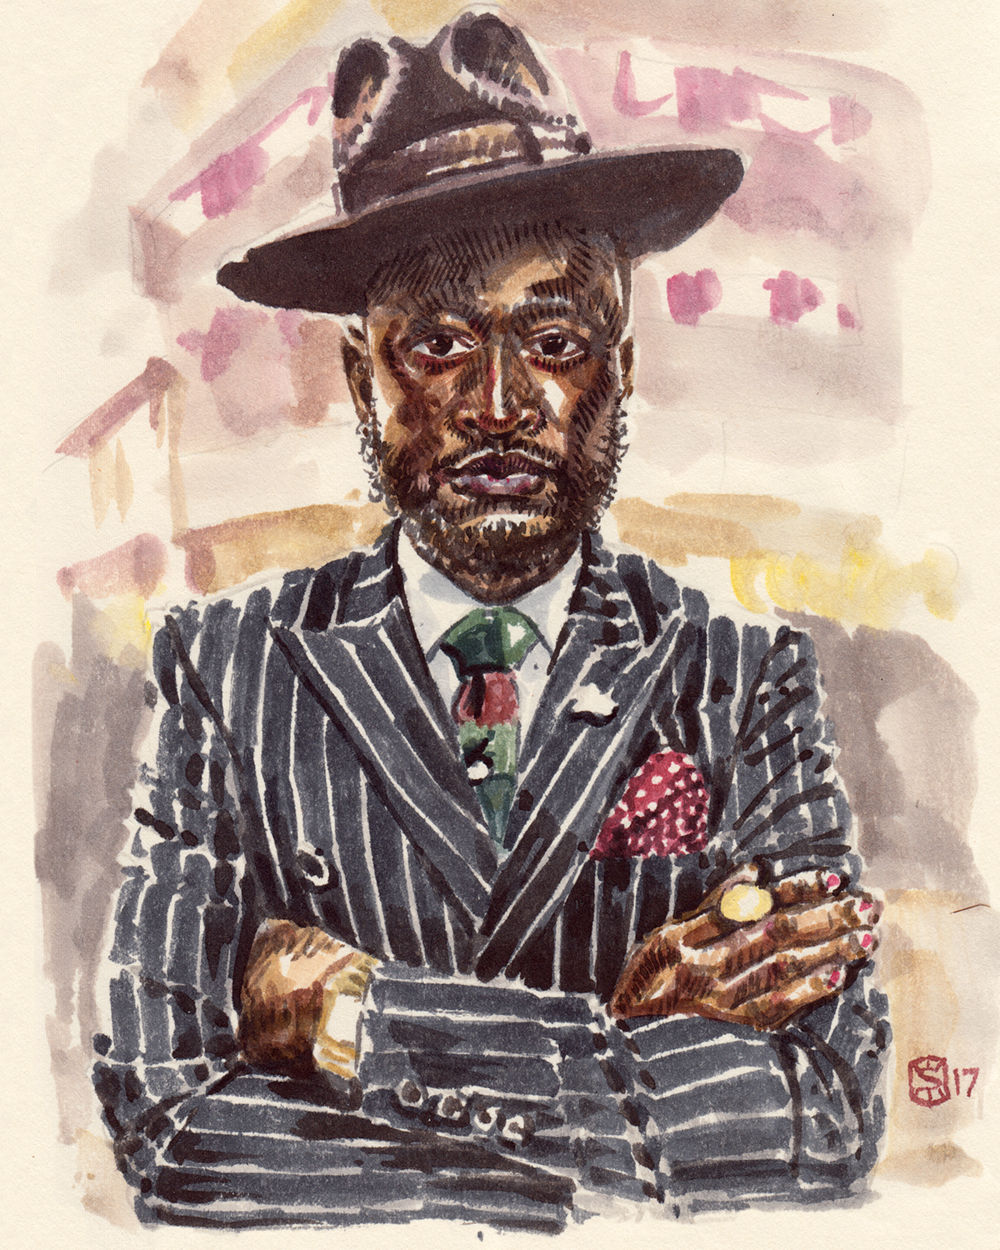 fashion illustration portrait of Lou the Vintage Guru